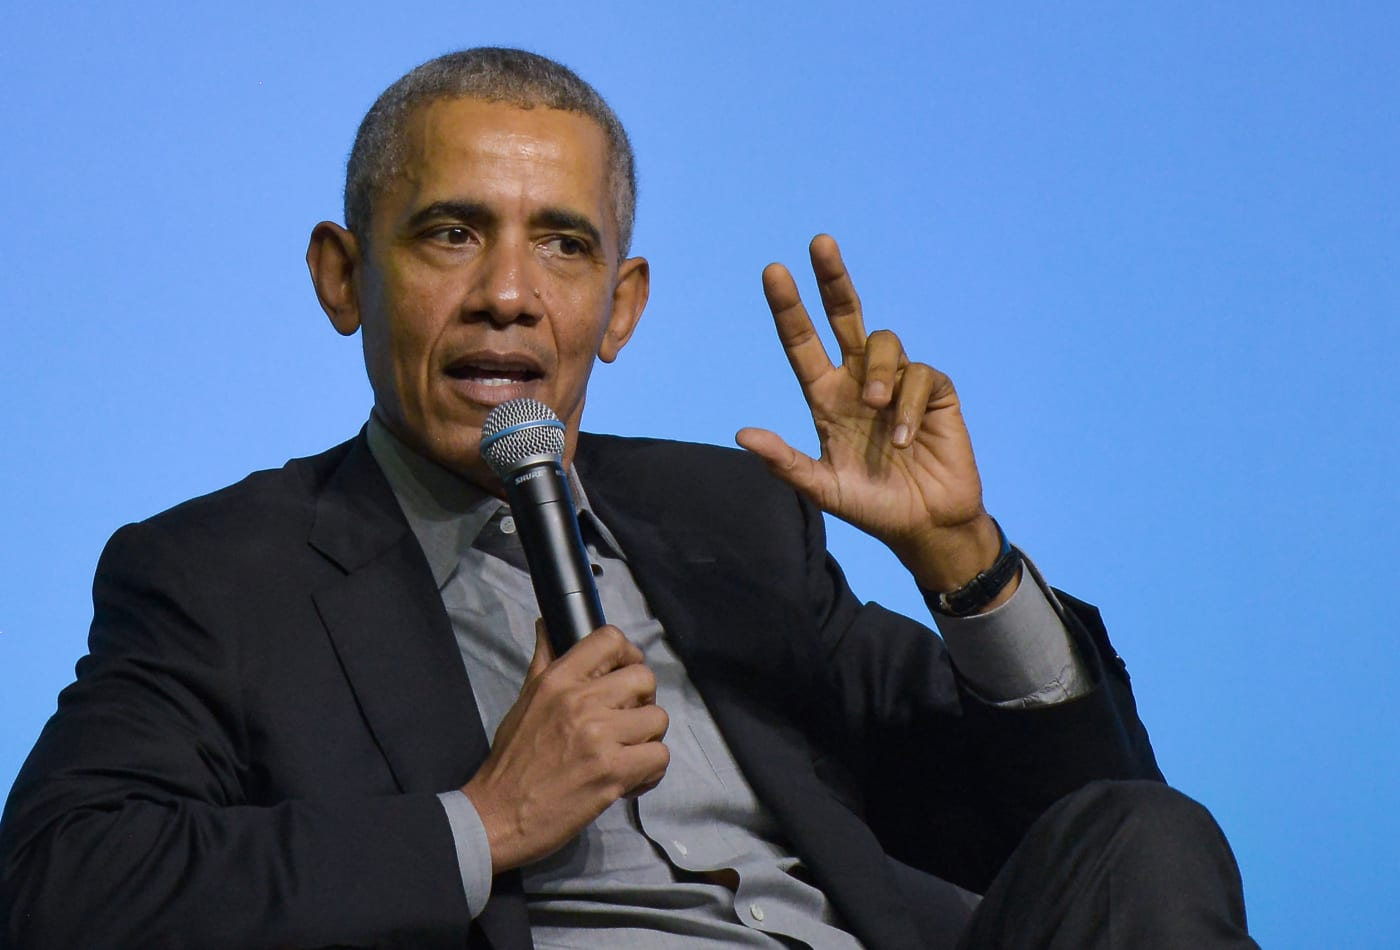 Barack Obama delivers impassioned speech to a crowd of youths during Malaysia trip